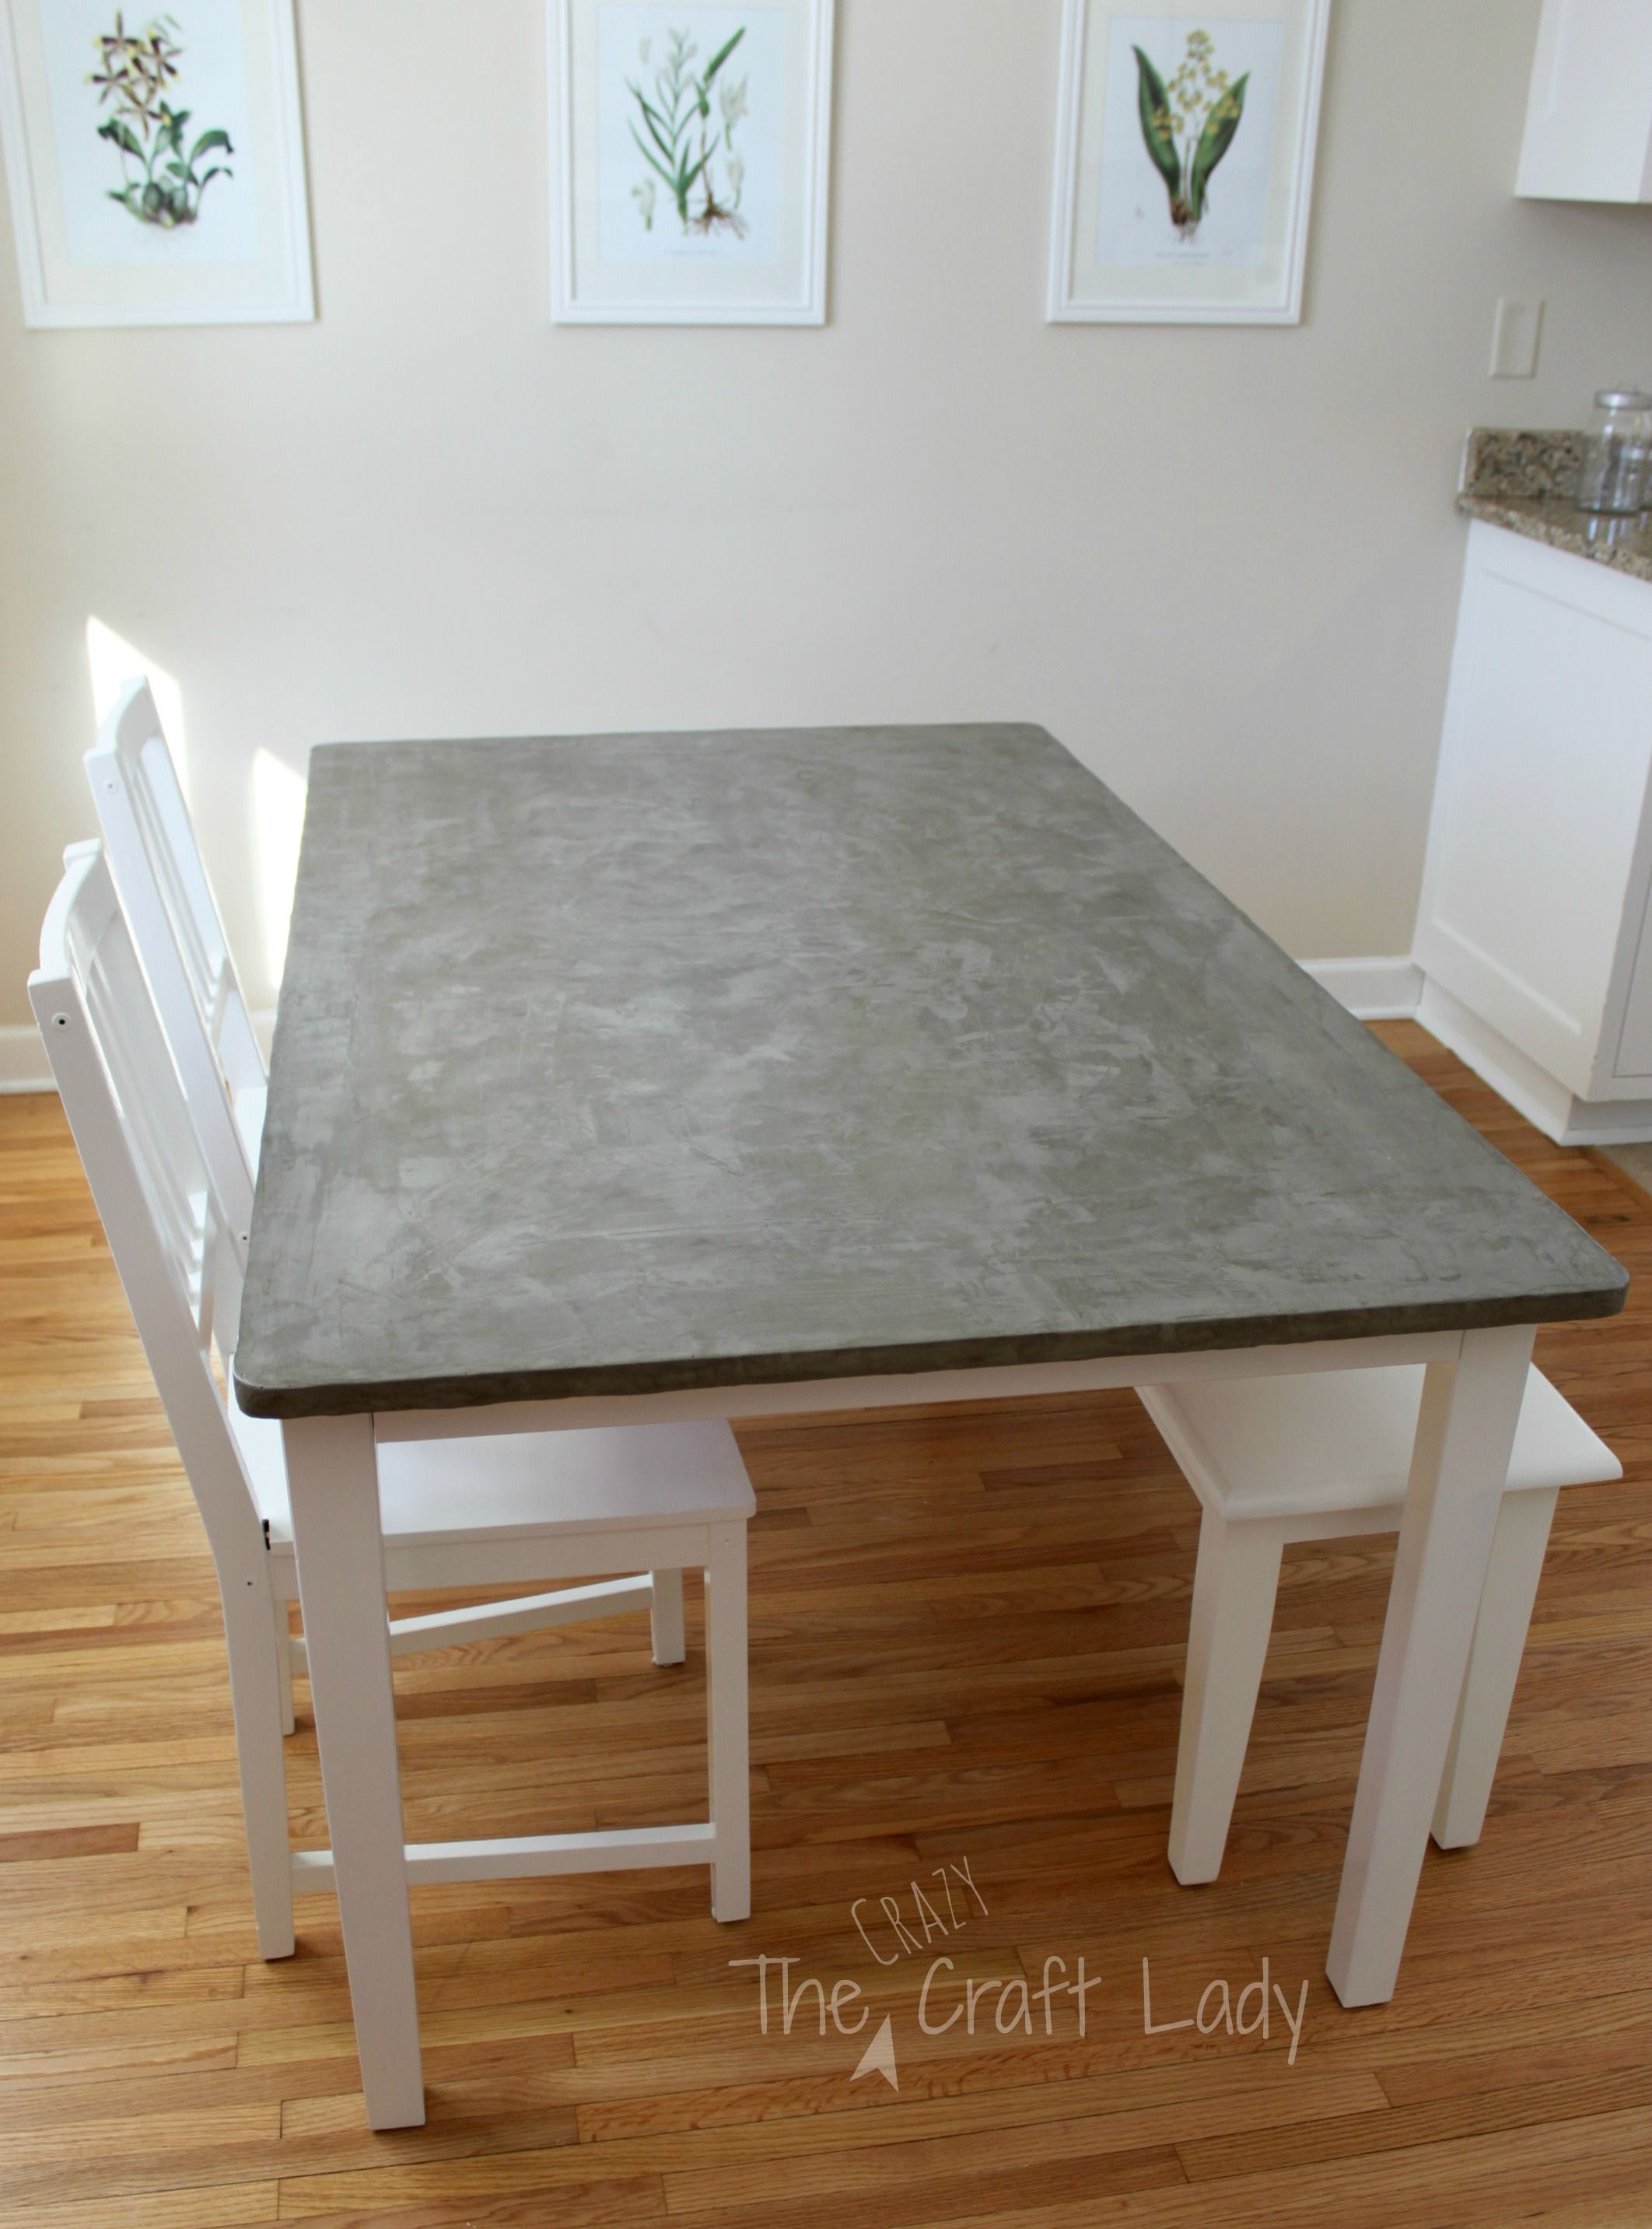 How To Make A Concrete Dining Table Top Using Henry Featherfinish Full Tutorial From The Crazy Craft Lady